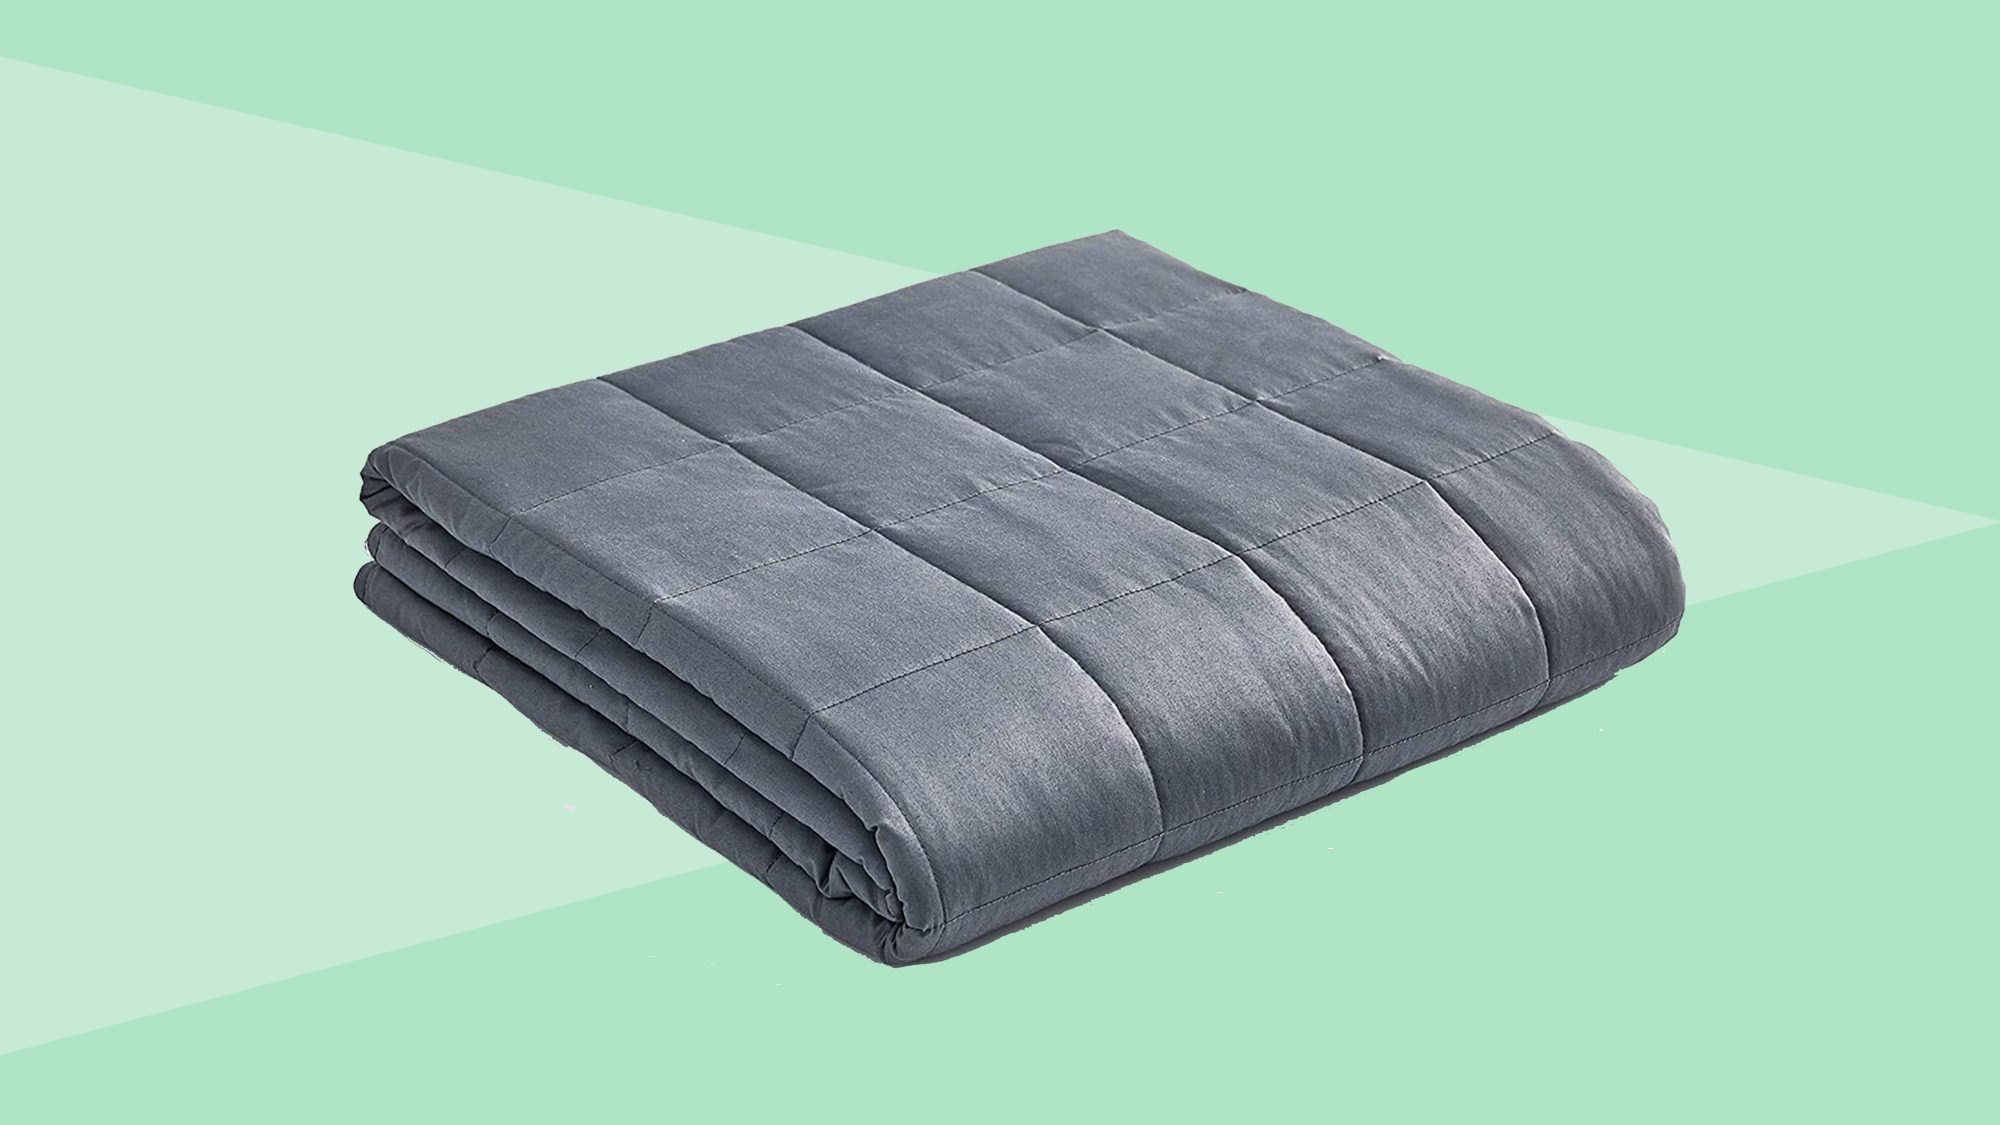 Amazon Prime Day Best Weighted Blankets